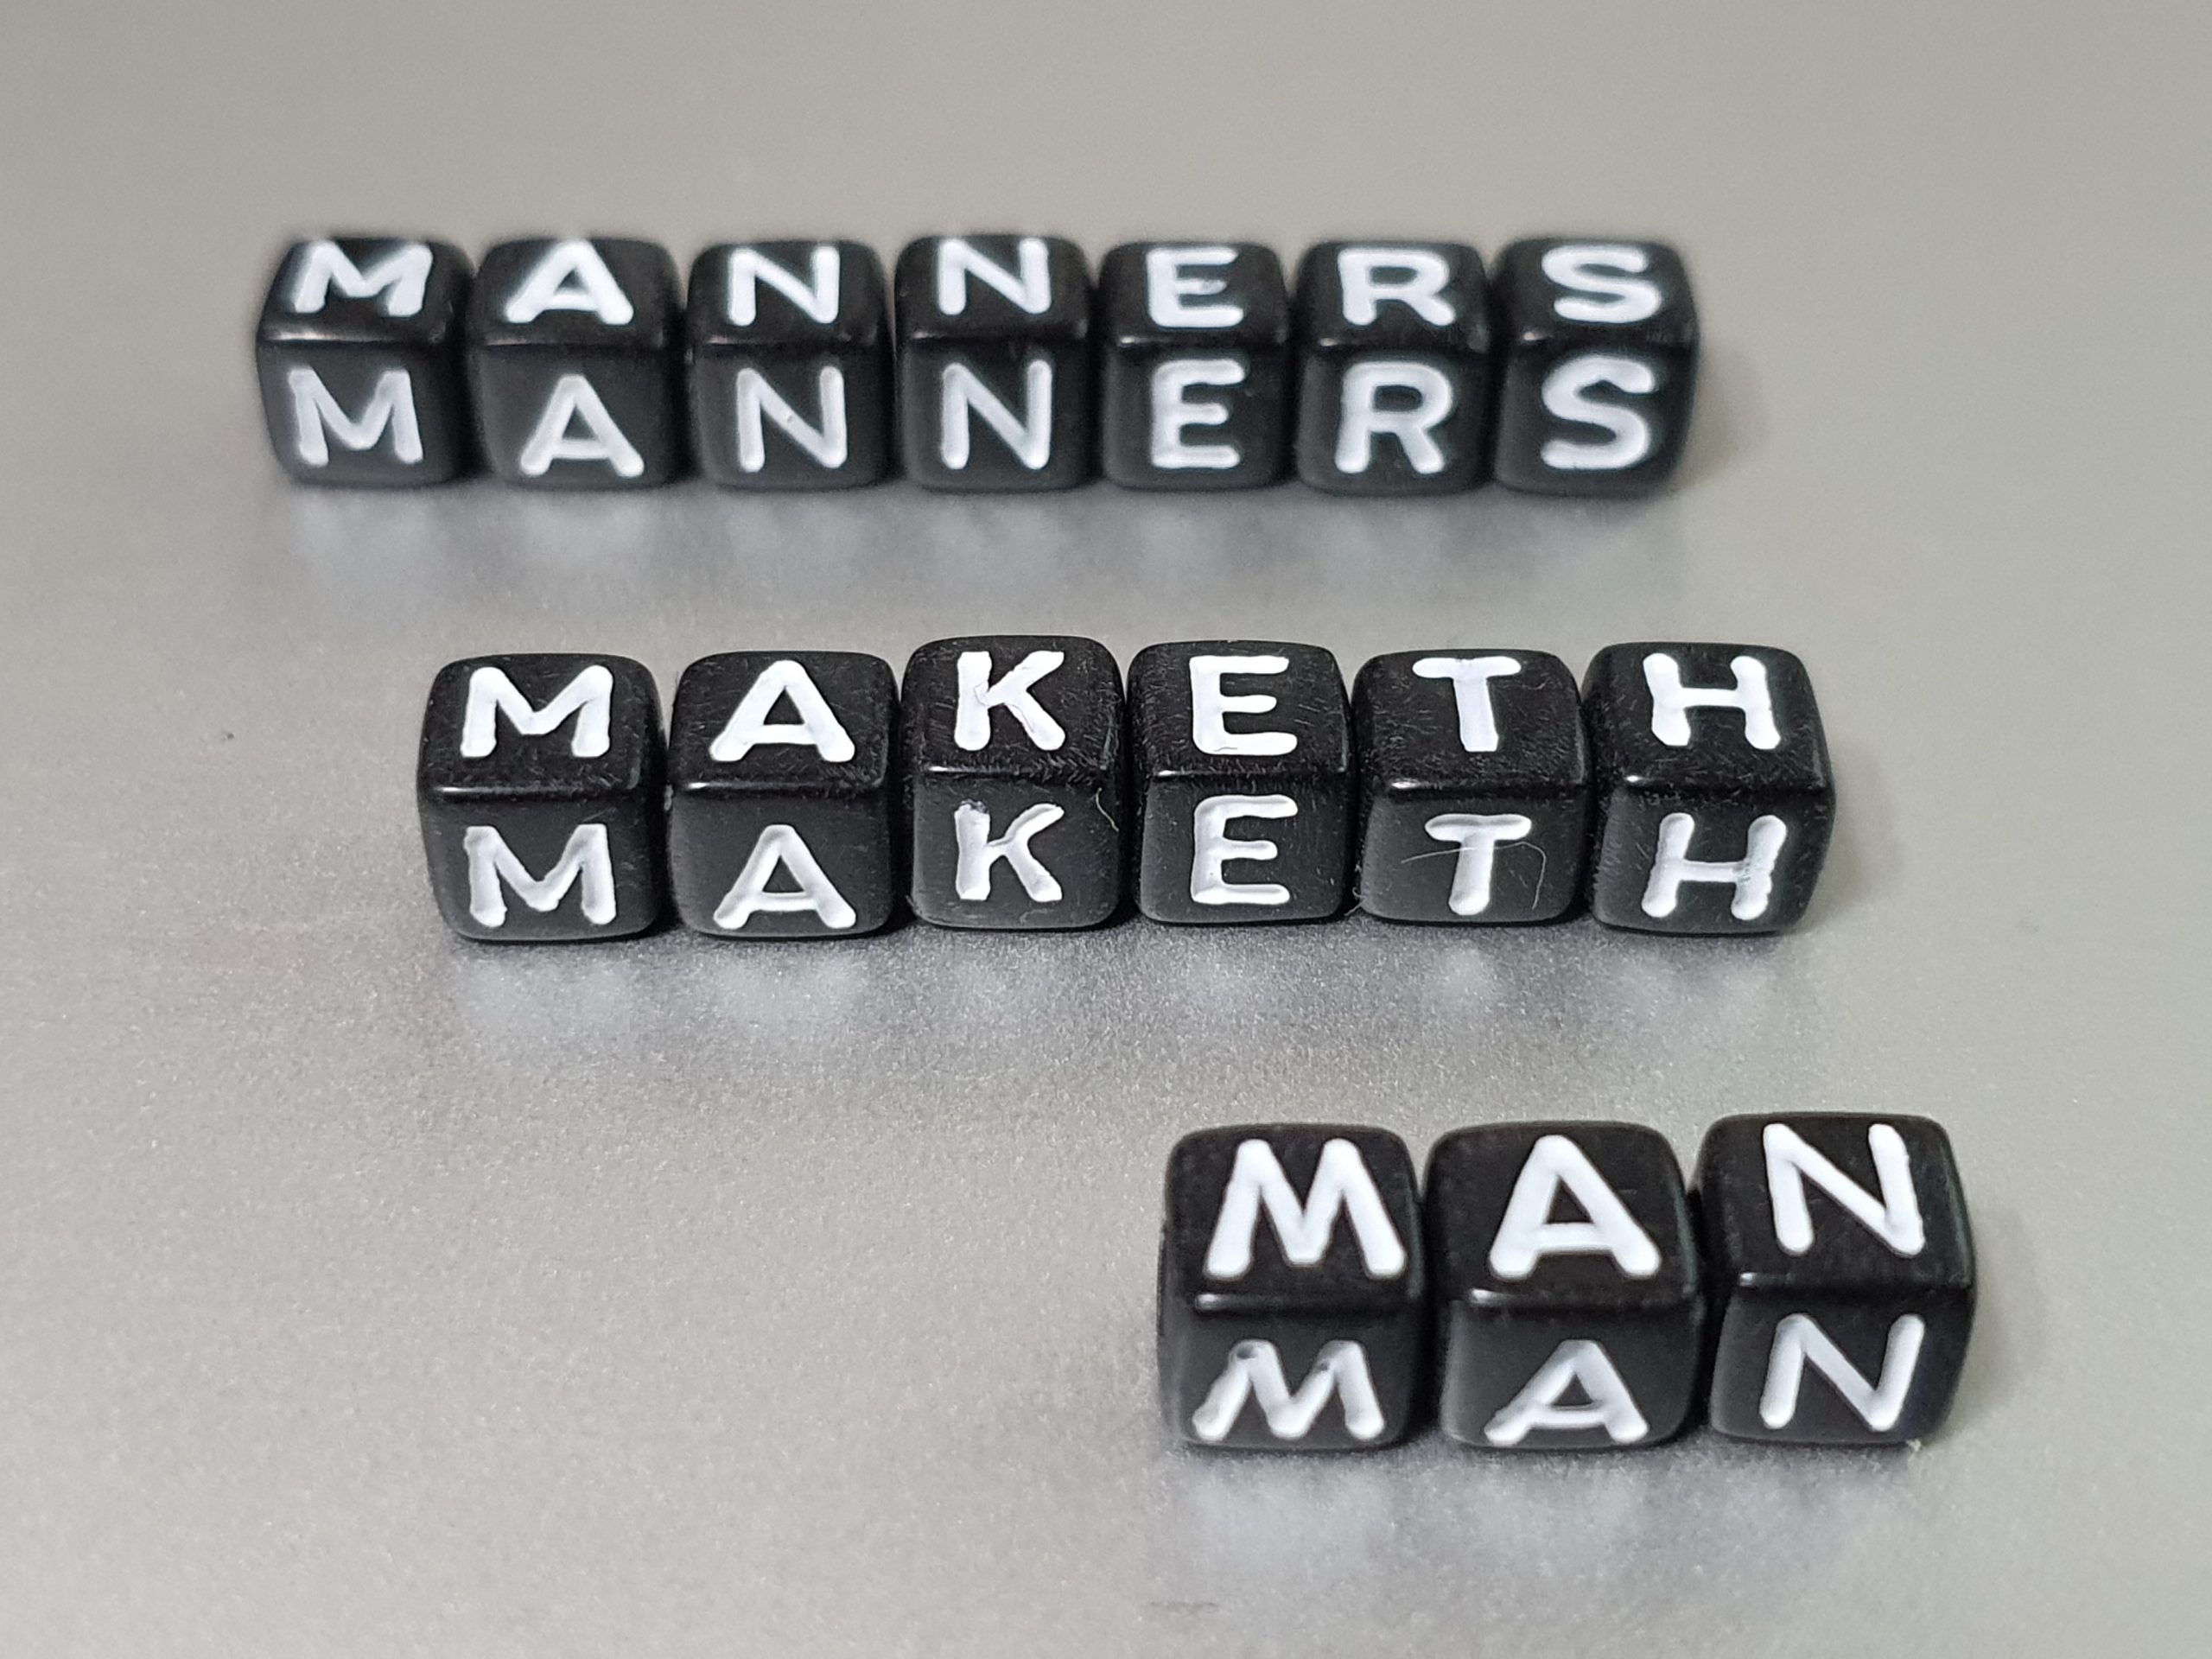 Kindness: Manners takes you through the world